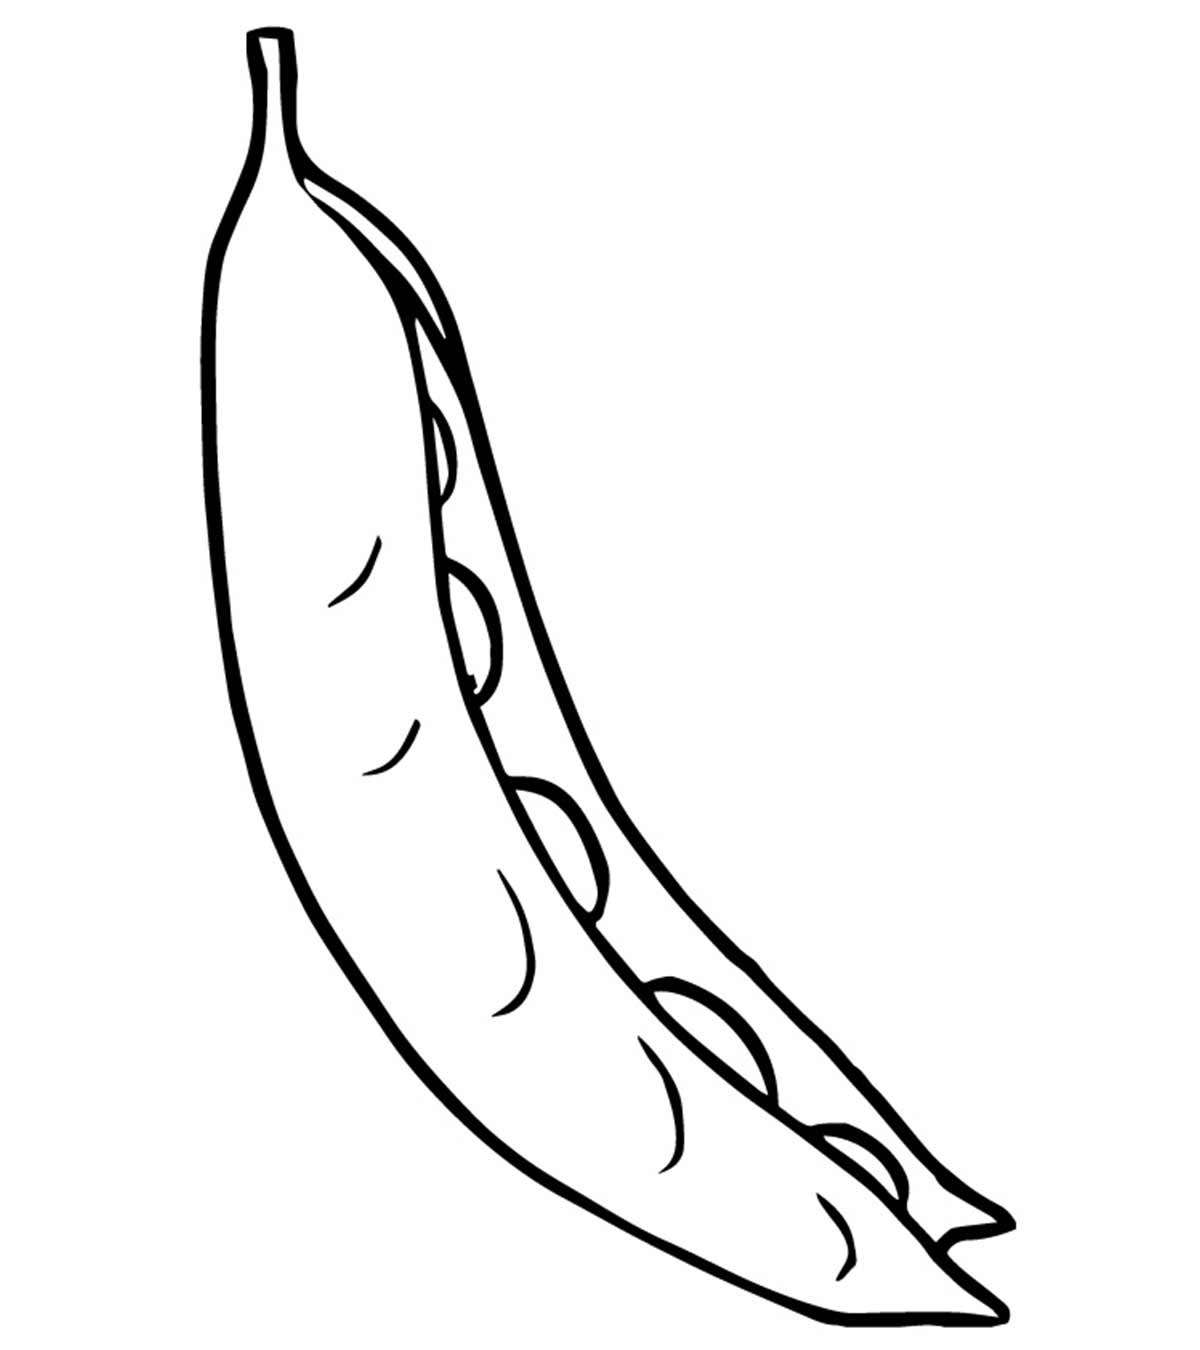 Beans coloring page | Free Printable Coloring Pages | 1350x1200